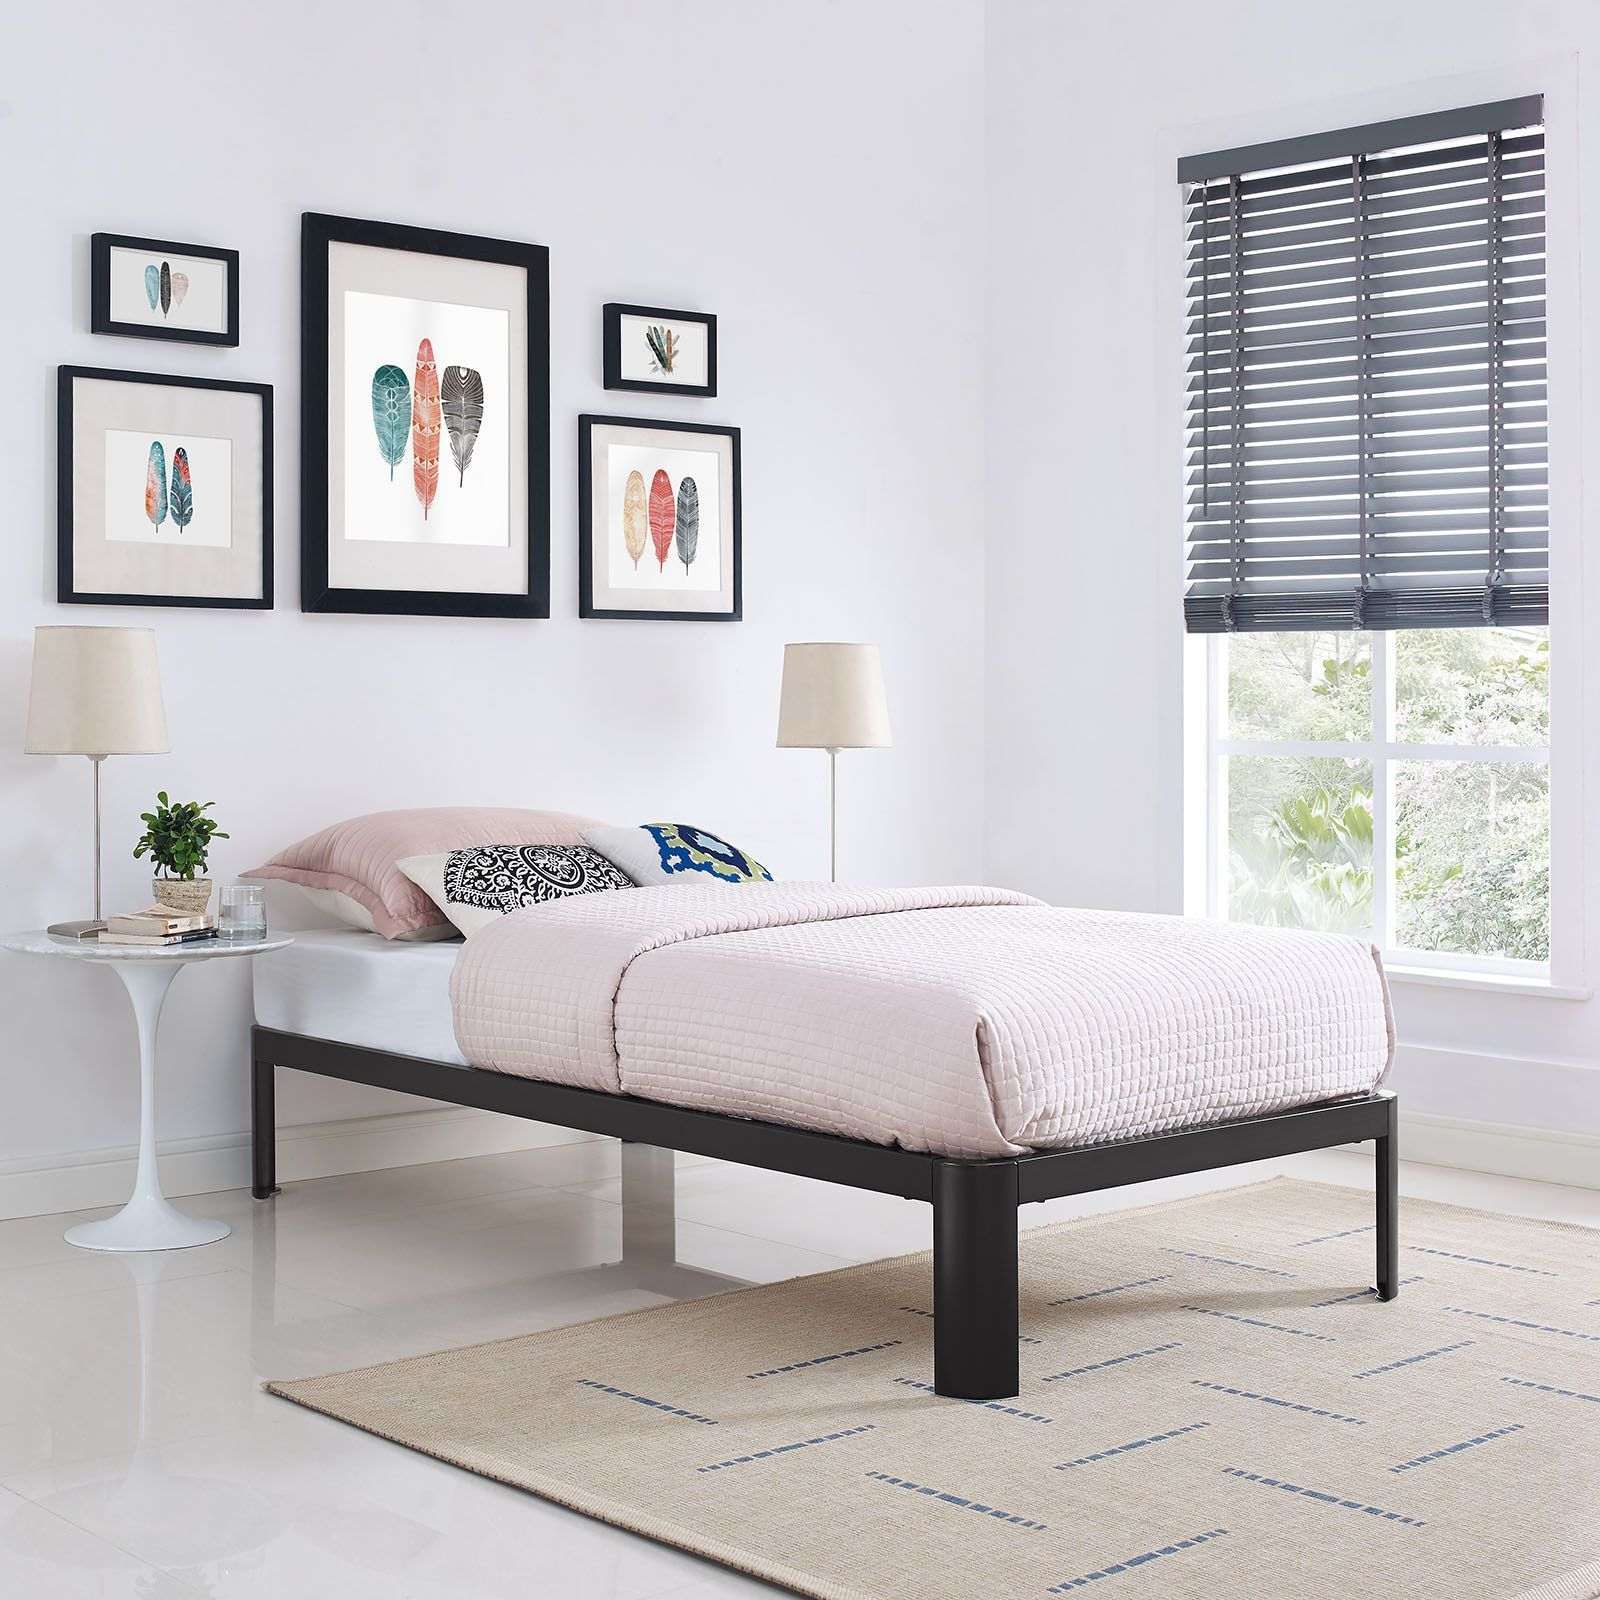 Modway Brown Corinne Bed Frame (Twin)